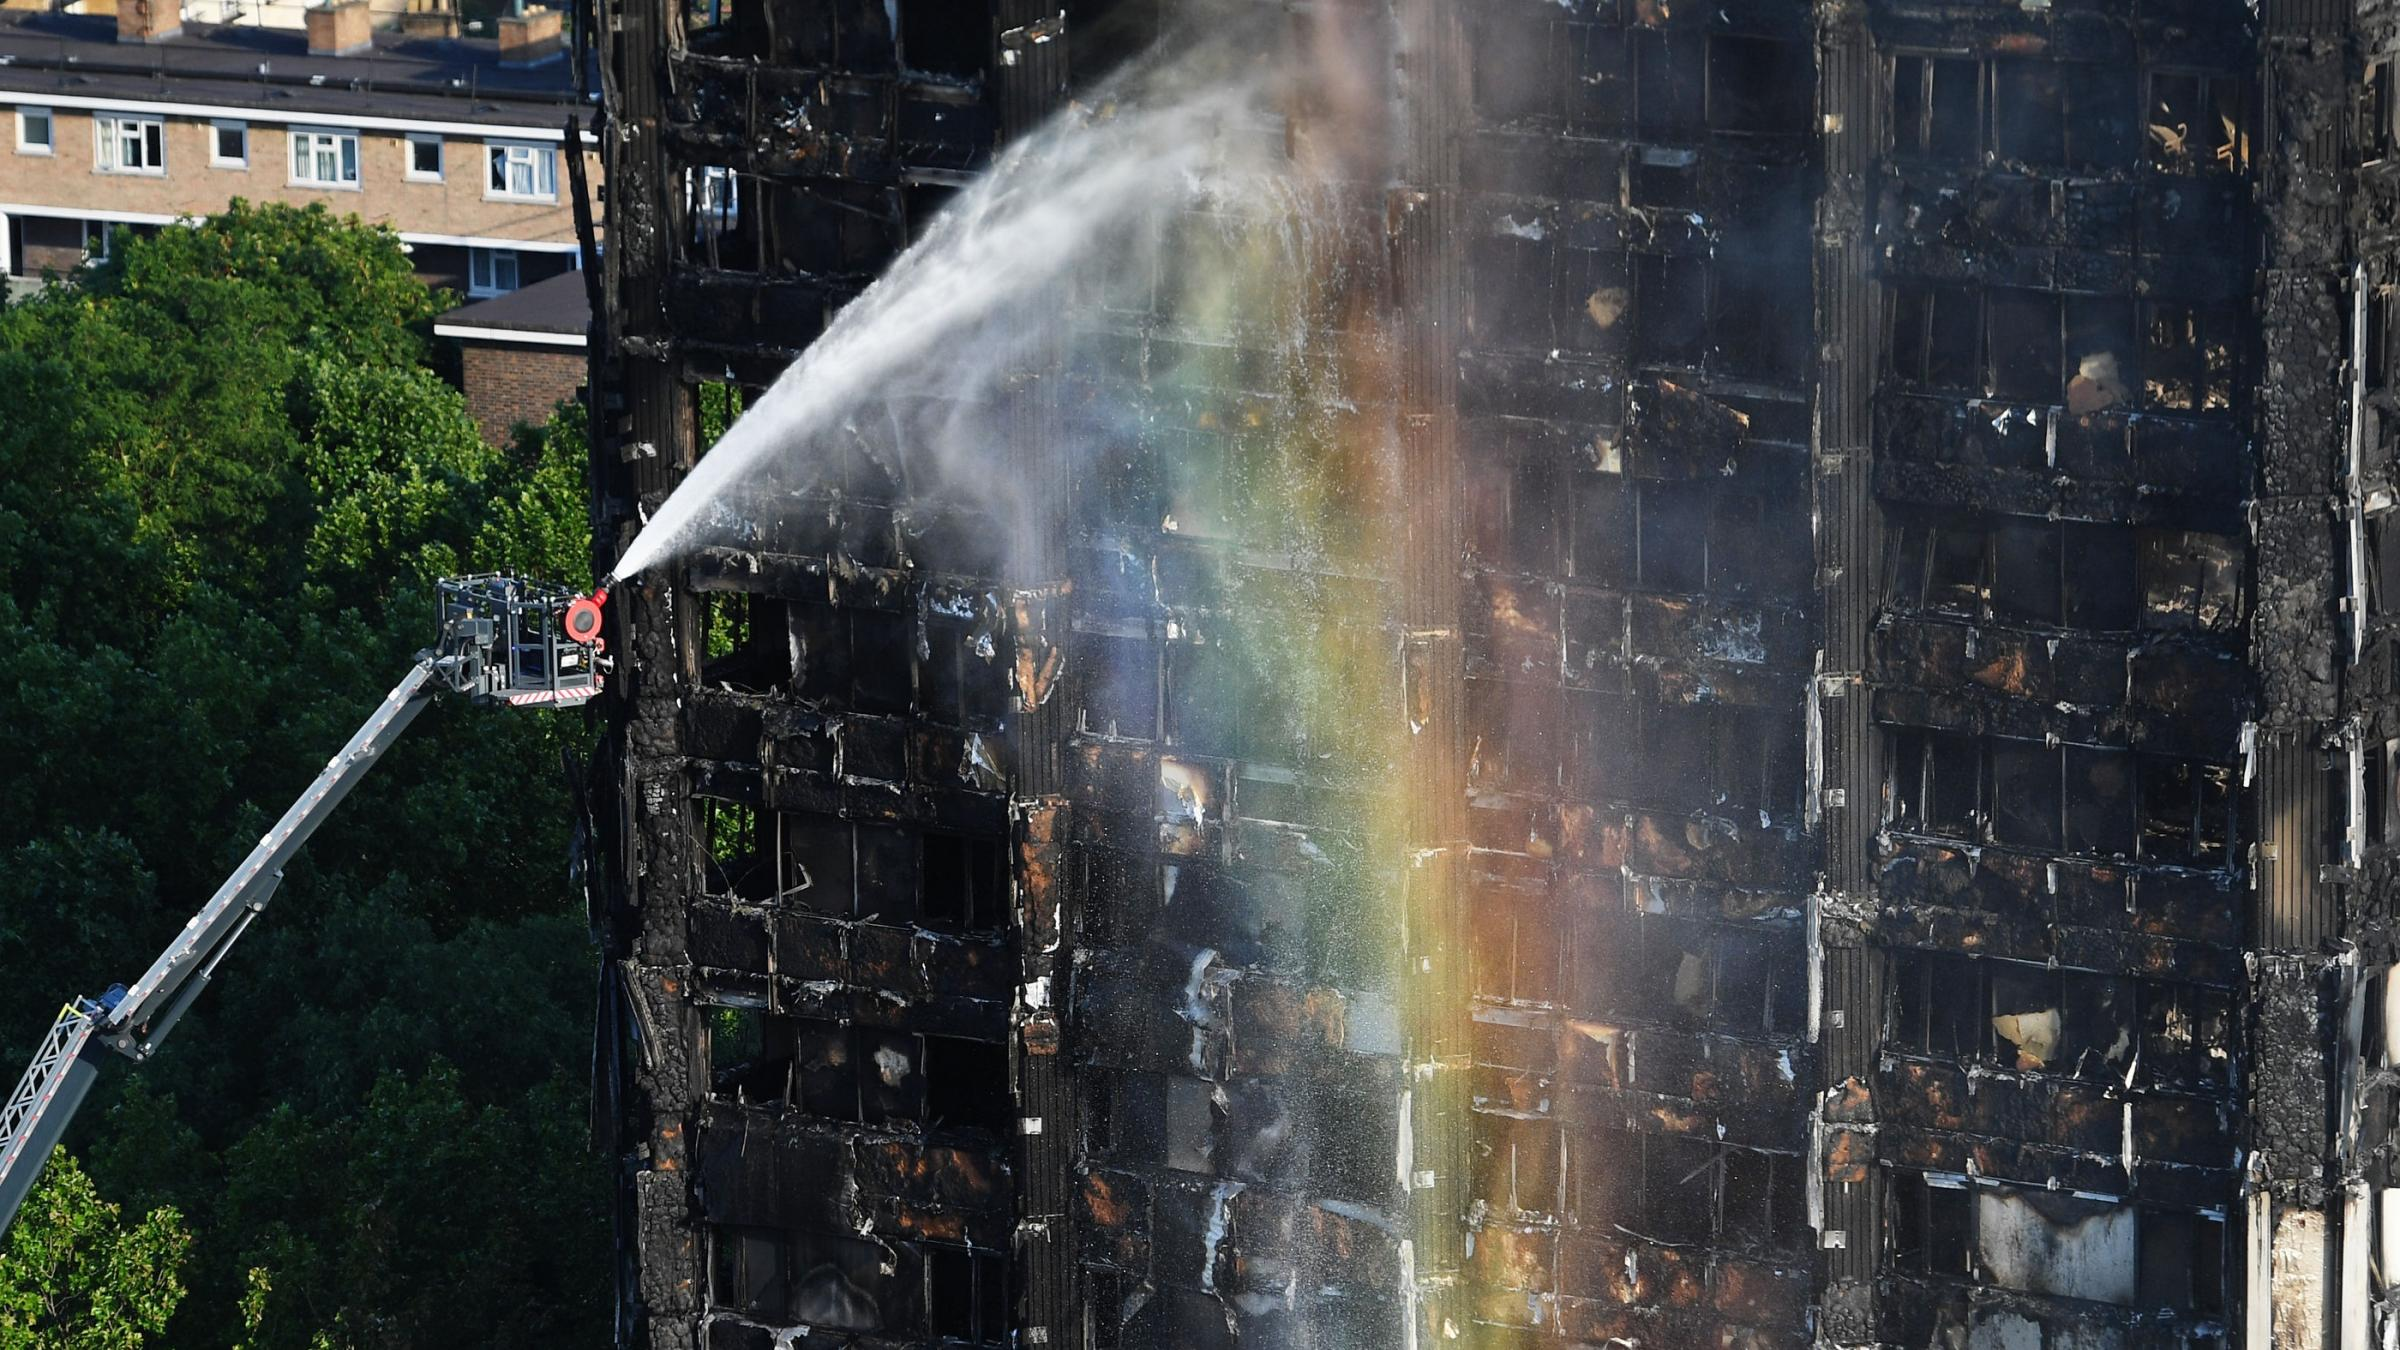 May orders probe into London tower fire; toll rises to 17